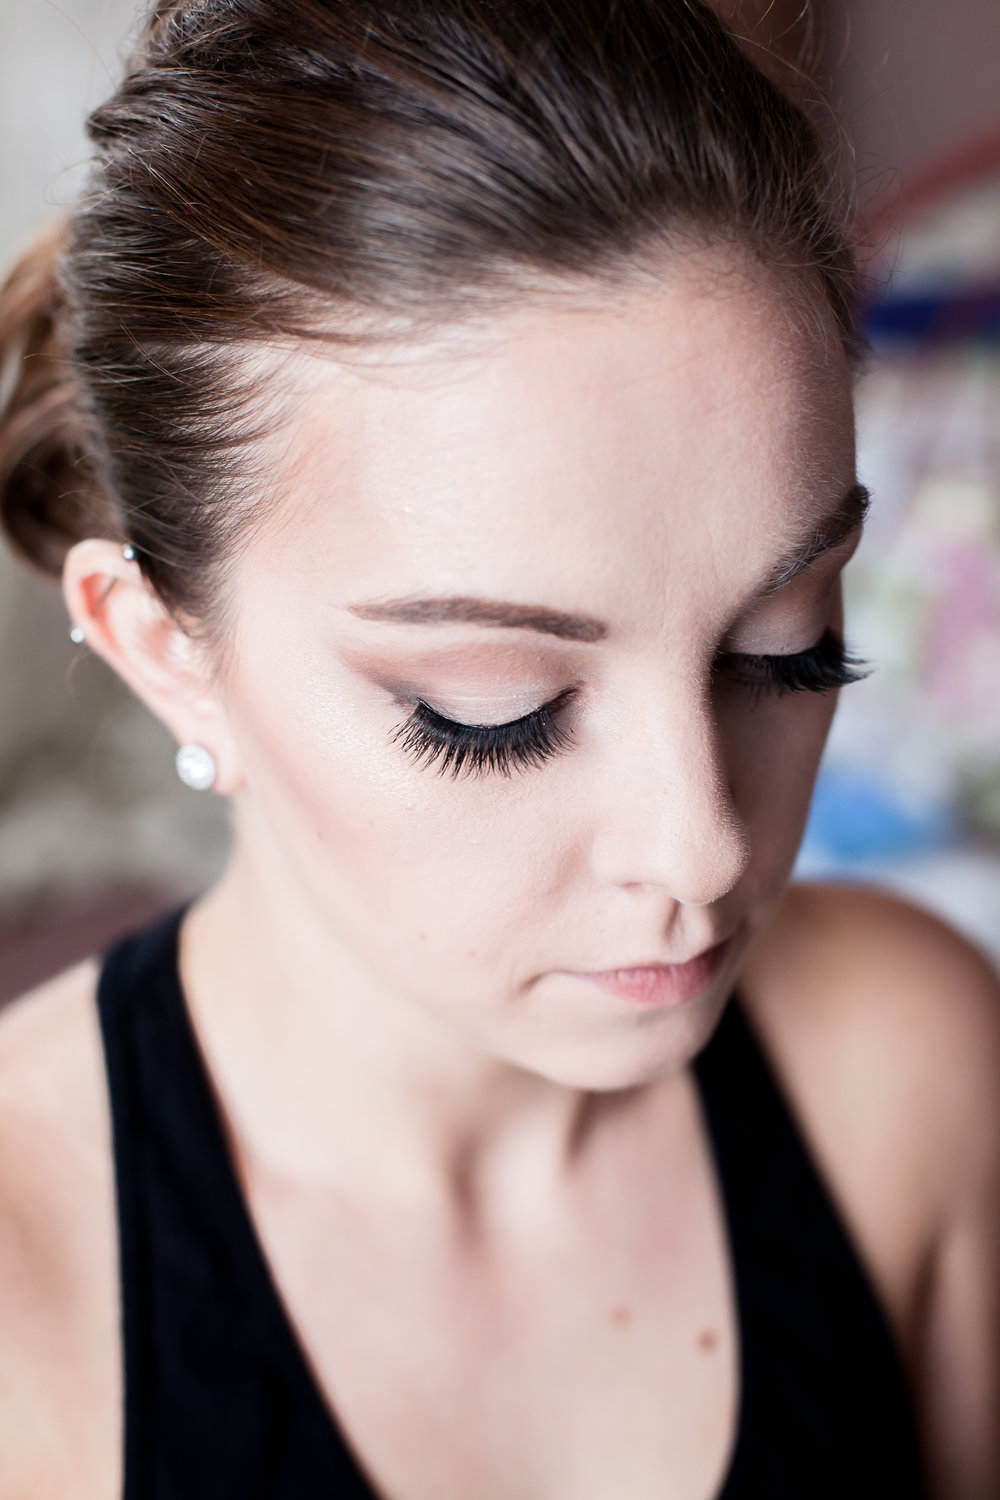 Gandjos_Tinko_BackSeatPhotography_backseatphoto21.JPG